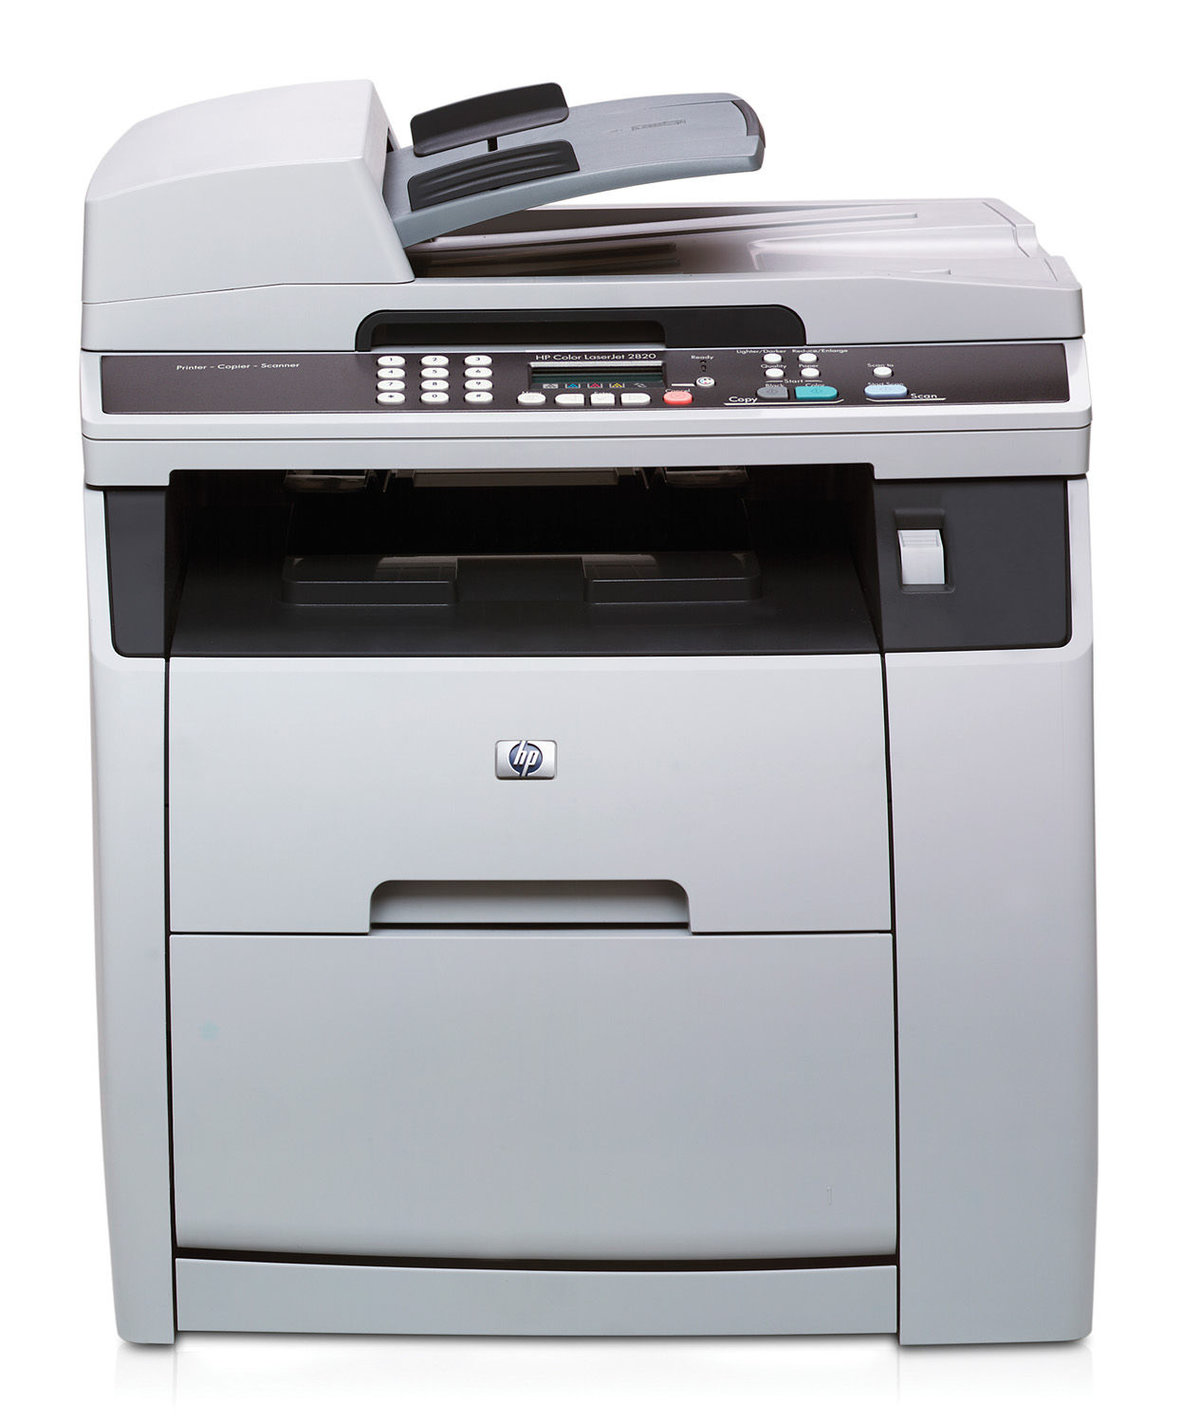 slide 1 of 3,show larger image, hp color laserjet 2820 all-in